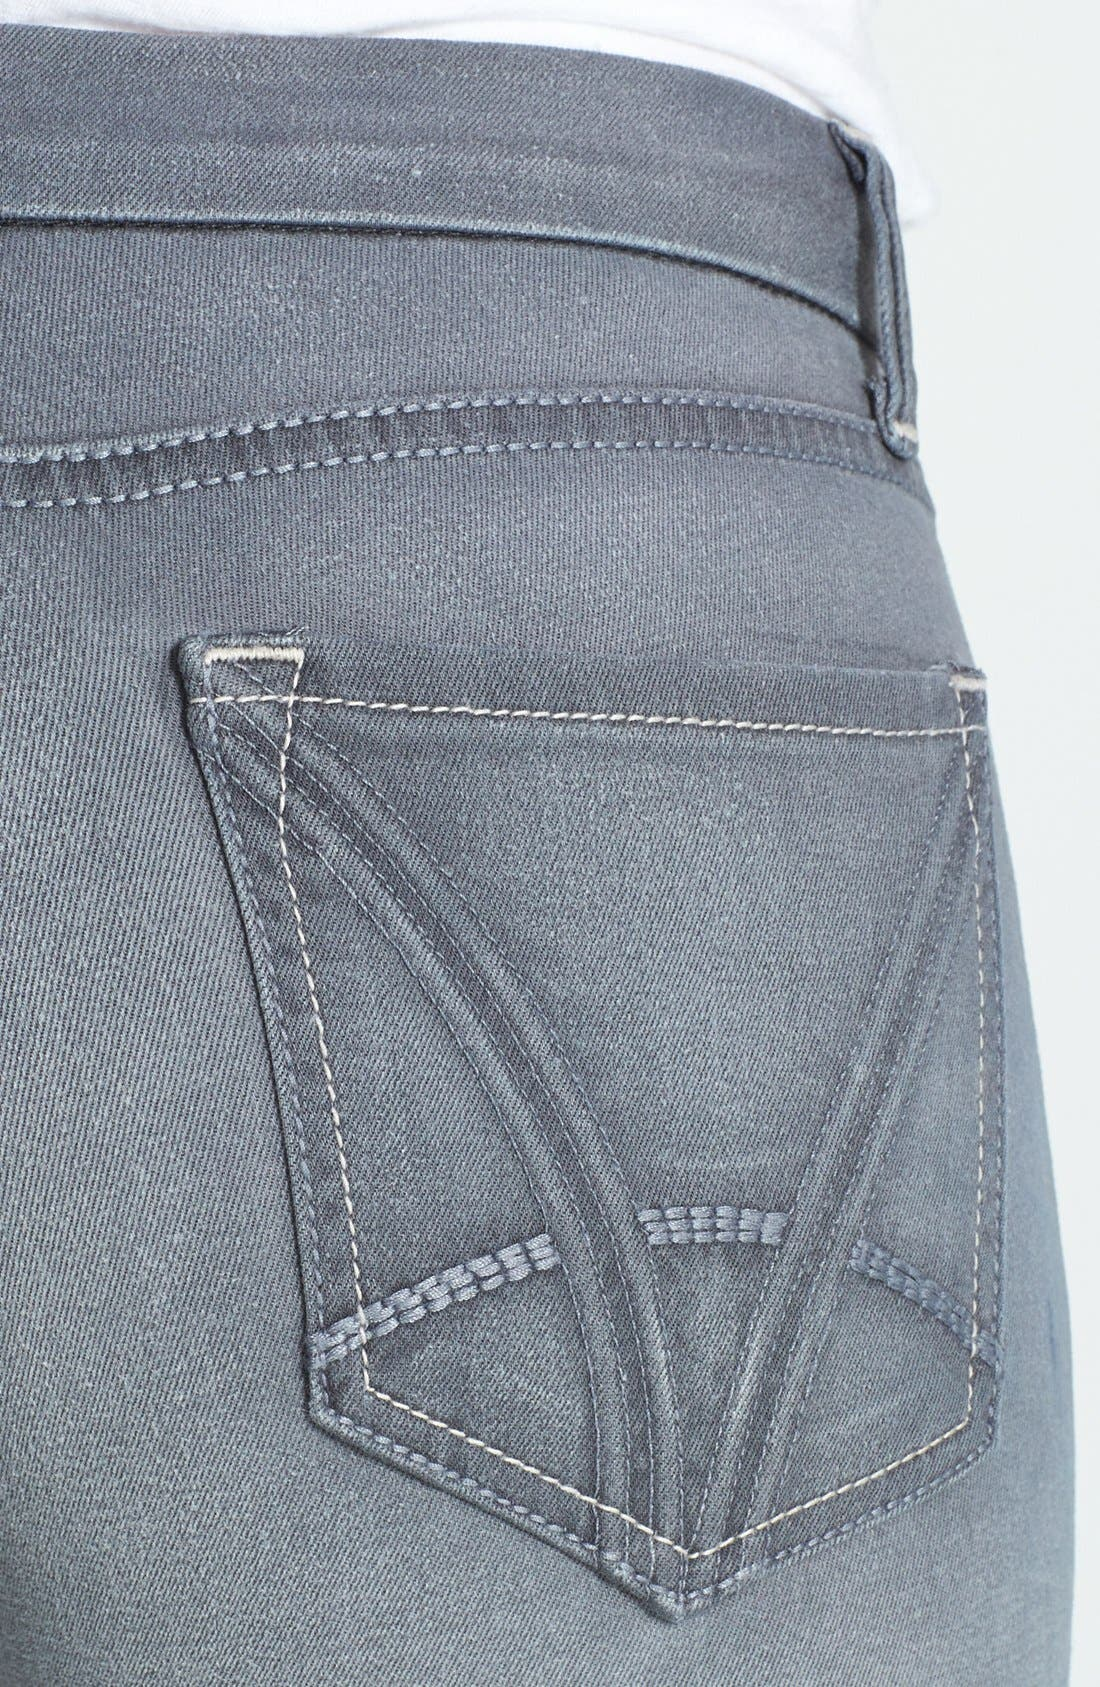 Alternate Image 3  - KUT from the Kloth 'Mia' Skinny Jeans (Notorious)